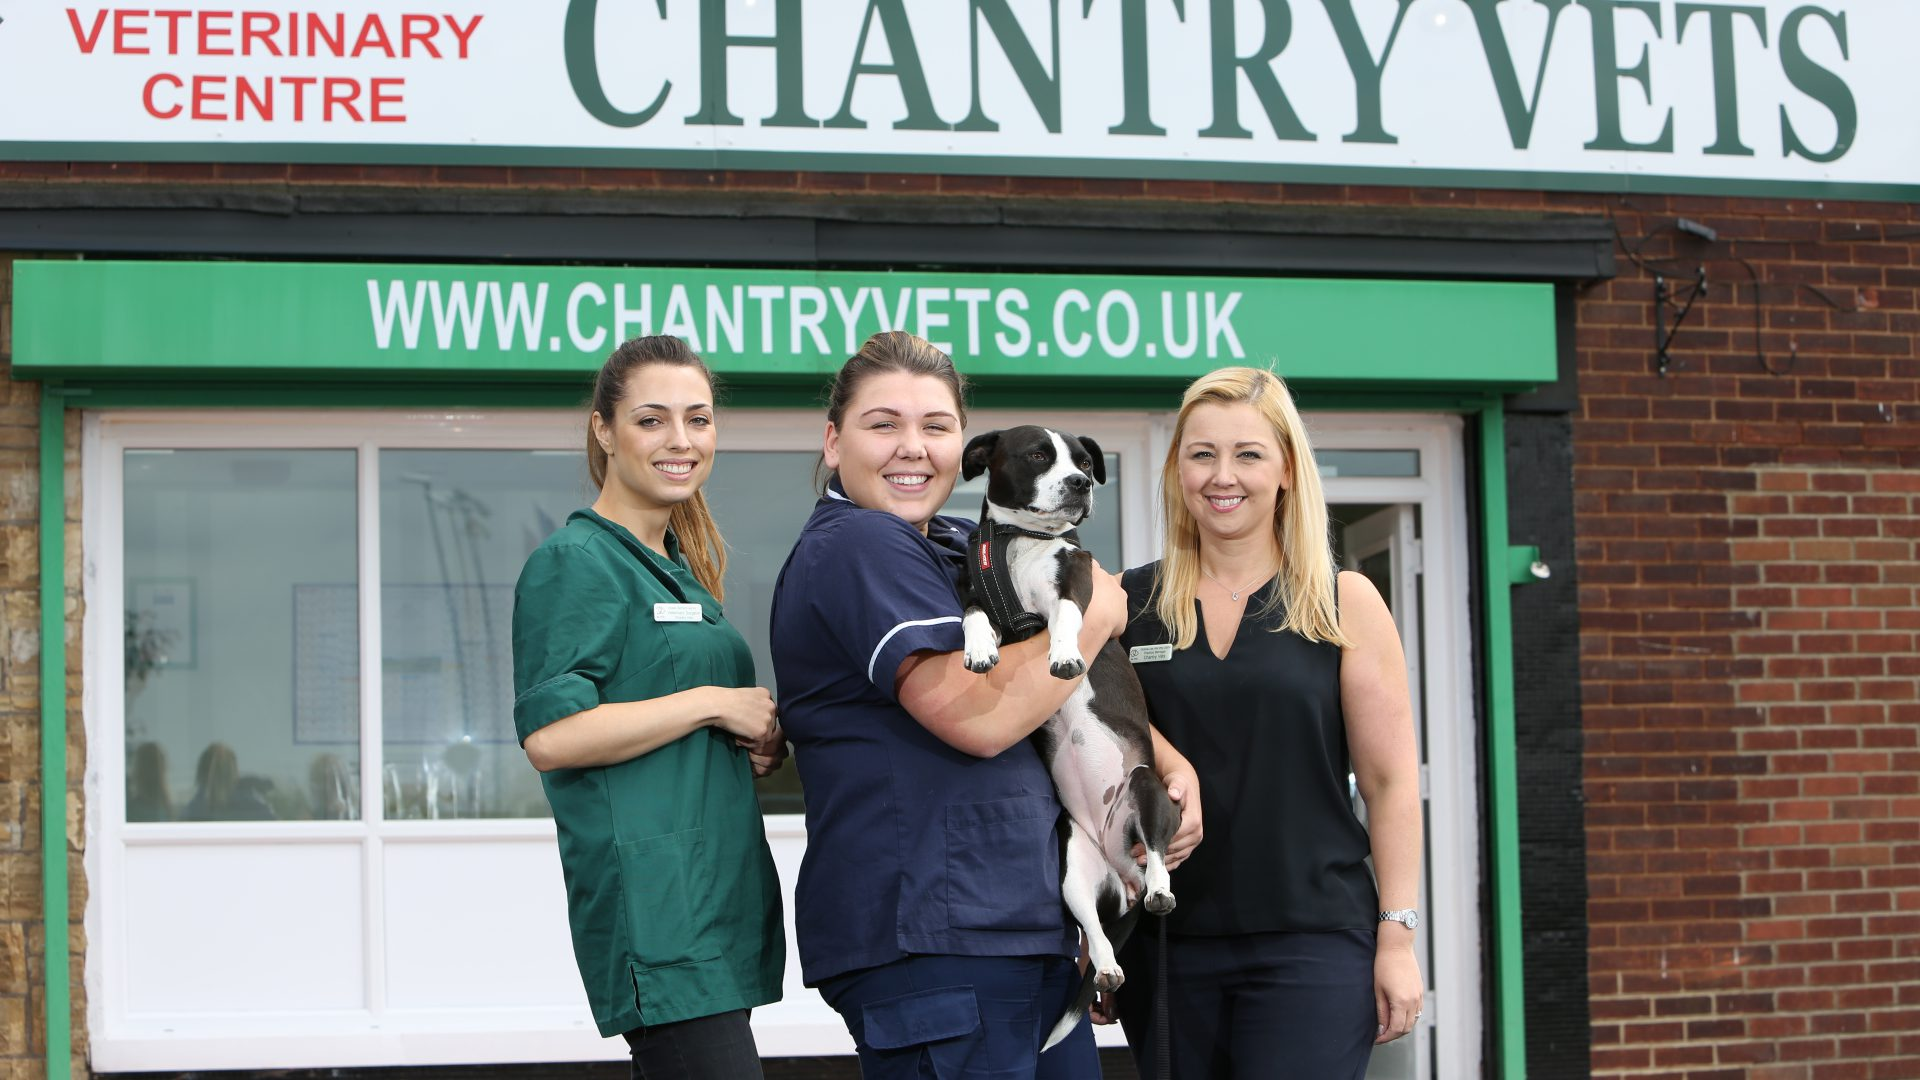 Boost for pet owners as veterinary practice expands after £300k investment